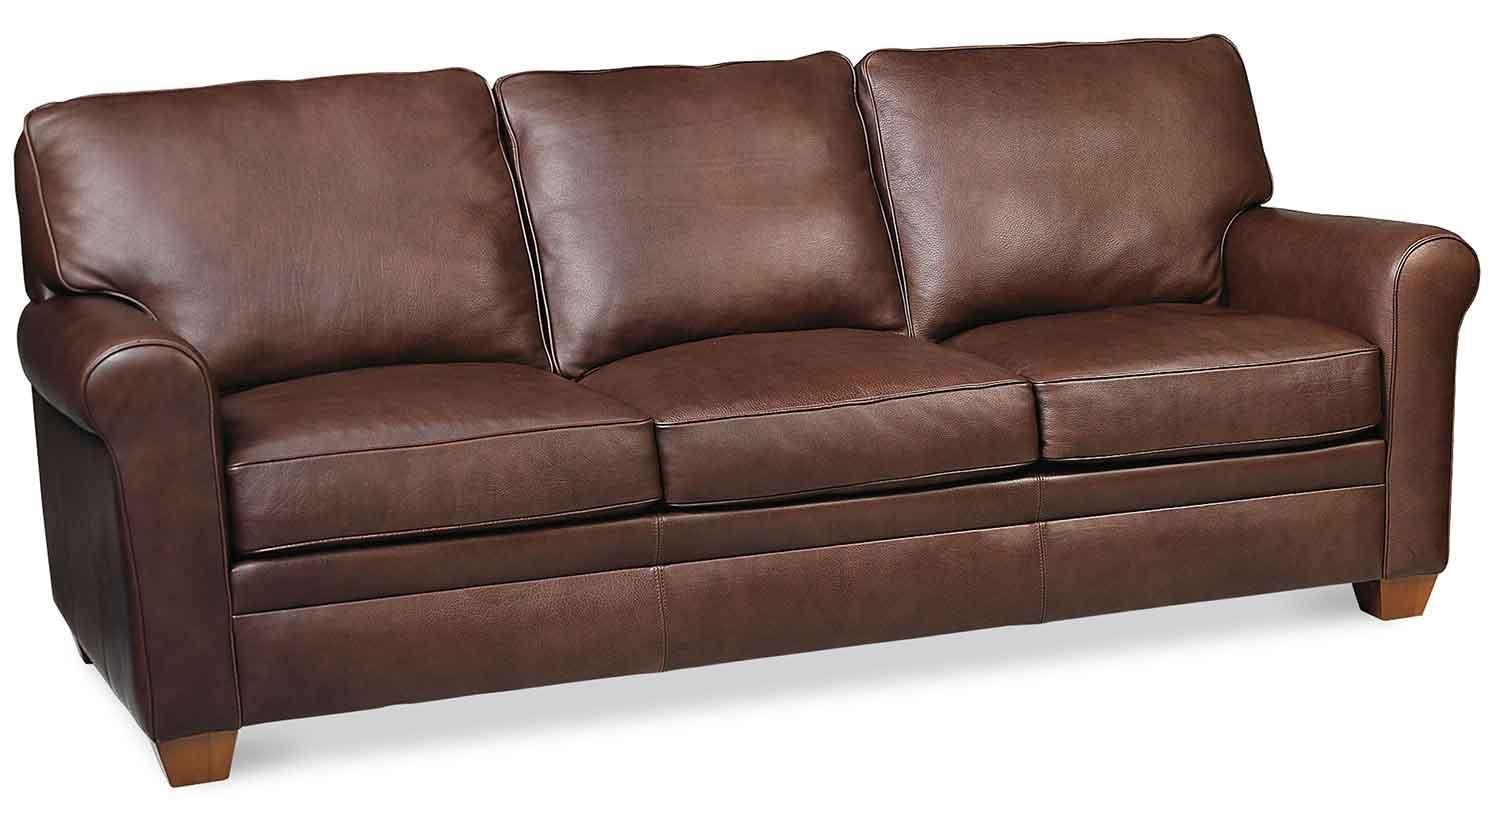 Circle Furniture – Braxton Sofa | Leather Sofas Danvers | Circle Regarding Braxton Sofa (Image 20 of 20)